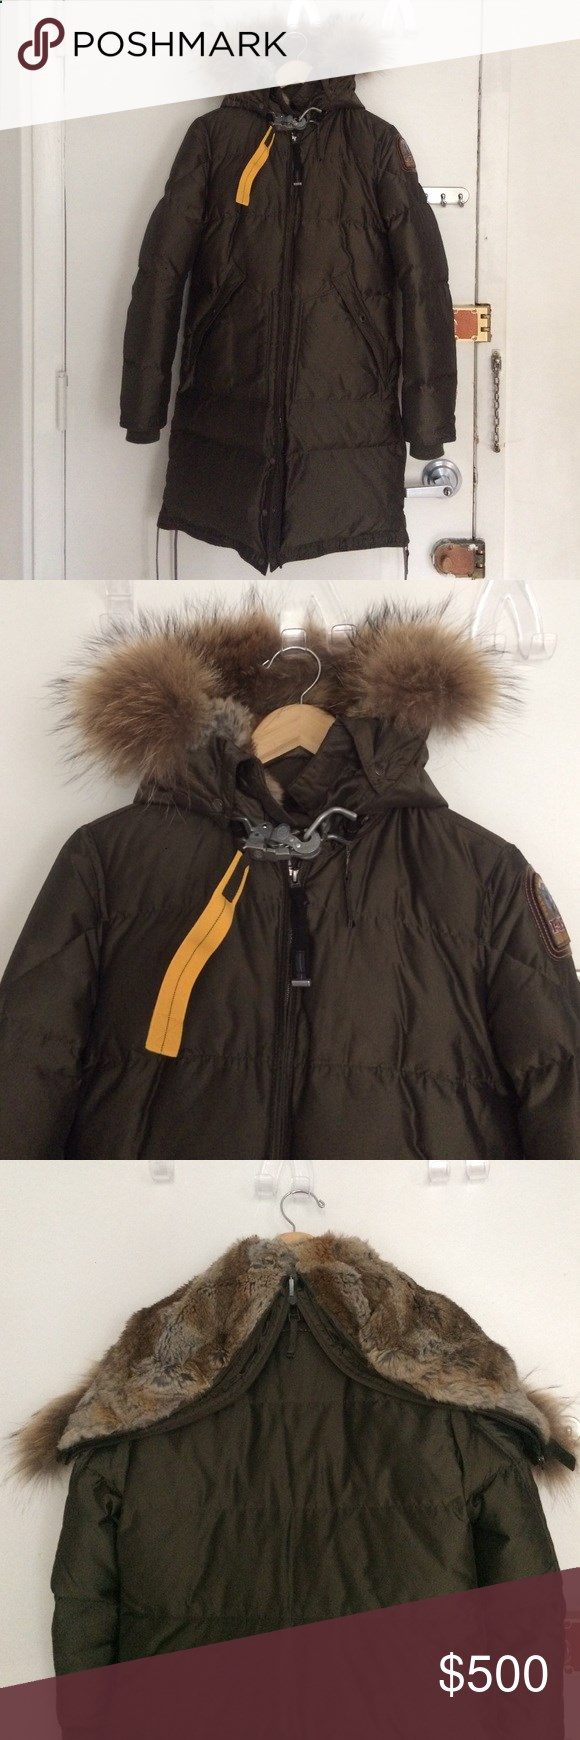 Parajumpers Long Bear Coat, M Amazing and warm down parka by Parajumpers with beautiful fur hood. It is the long bear style from their Masterpiece series.